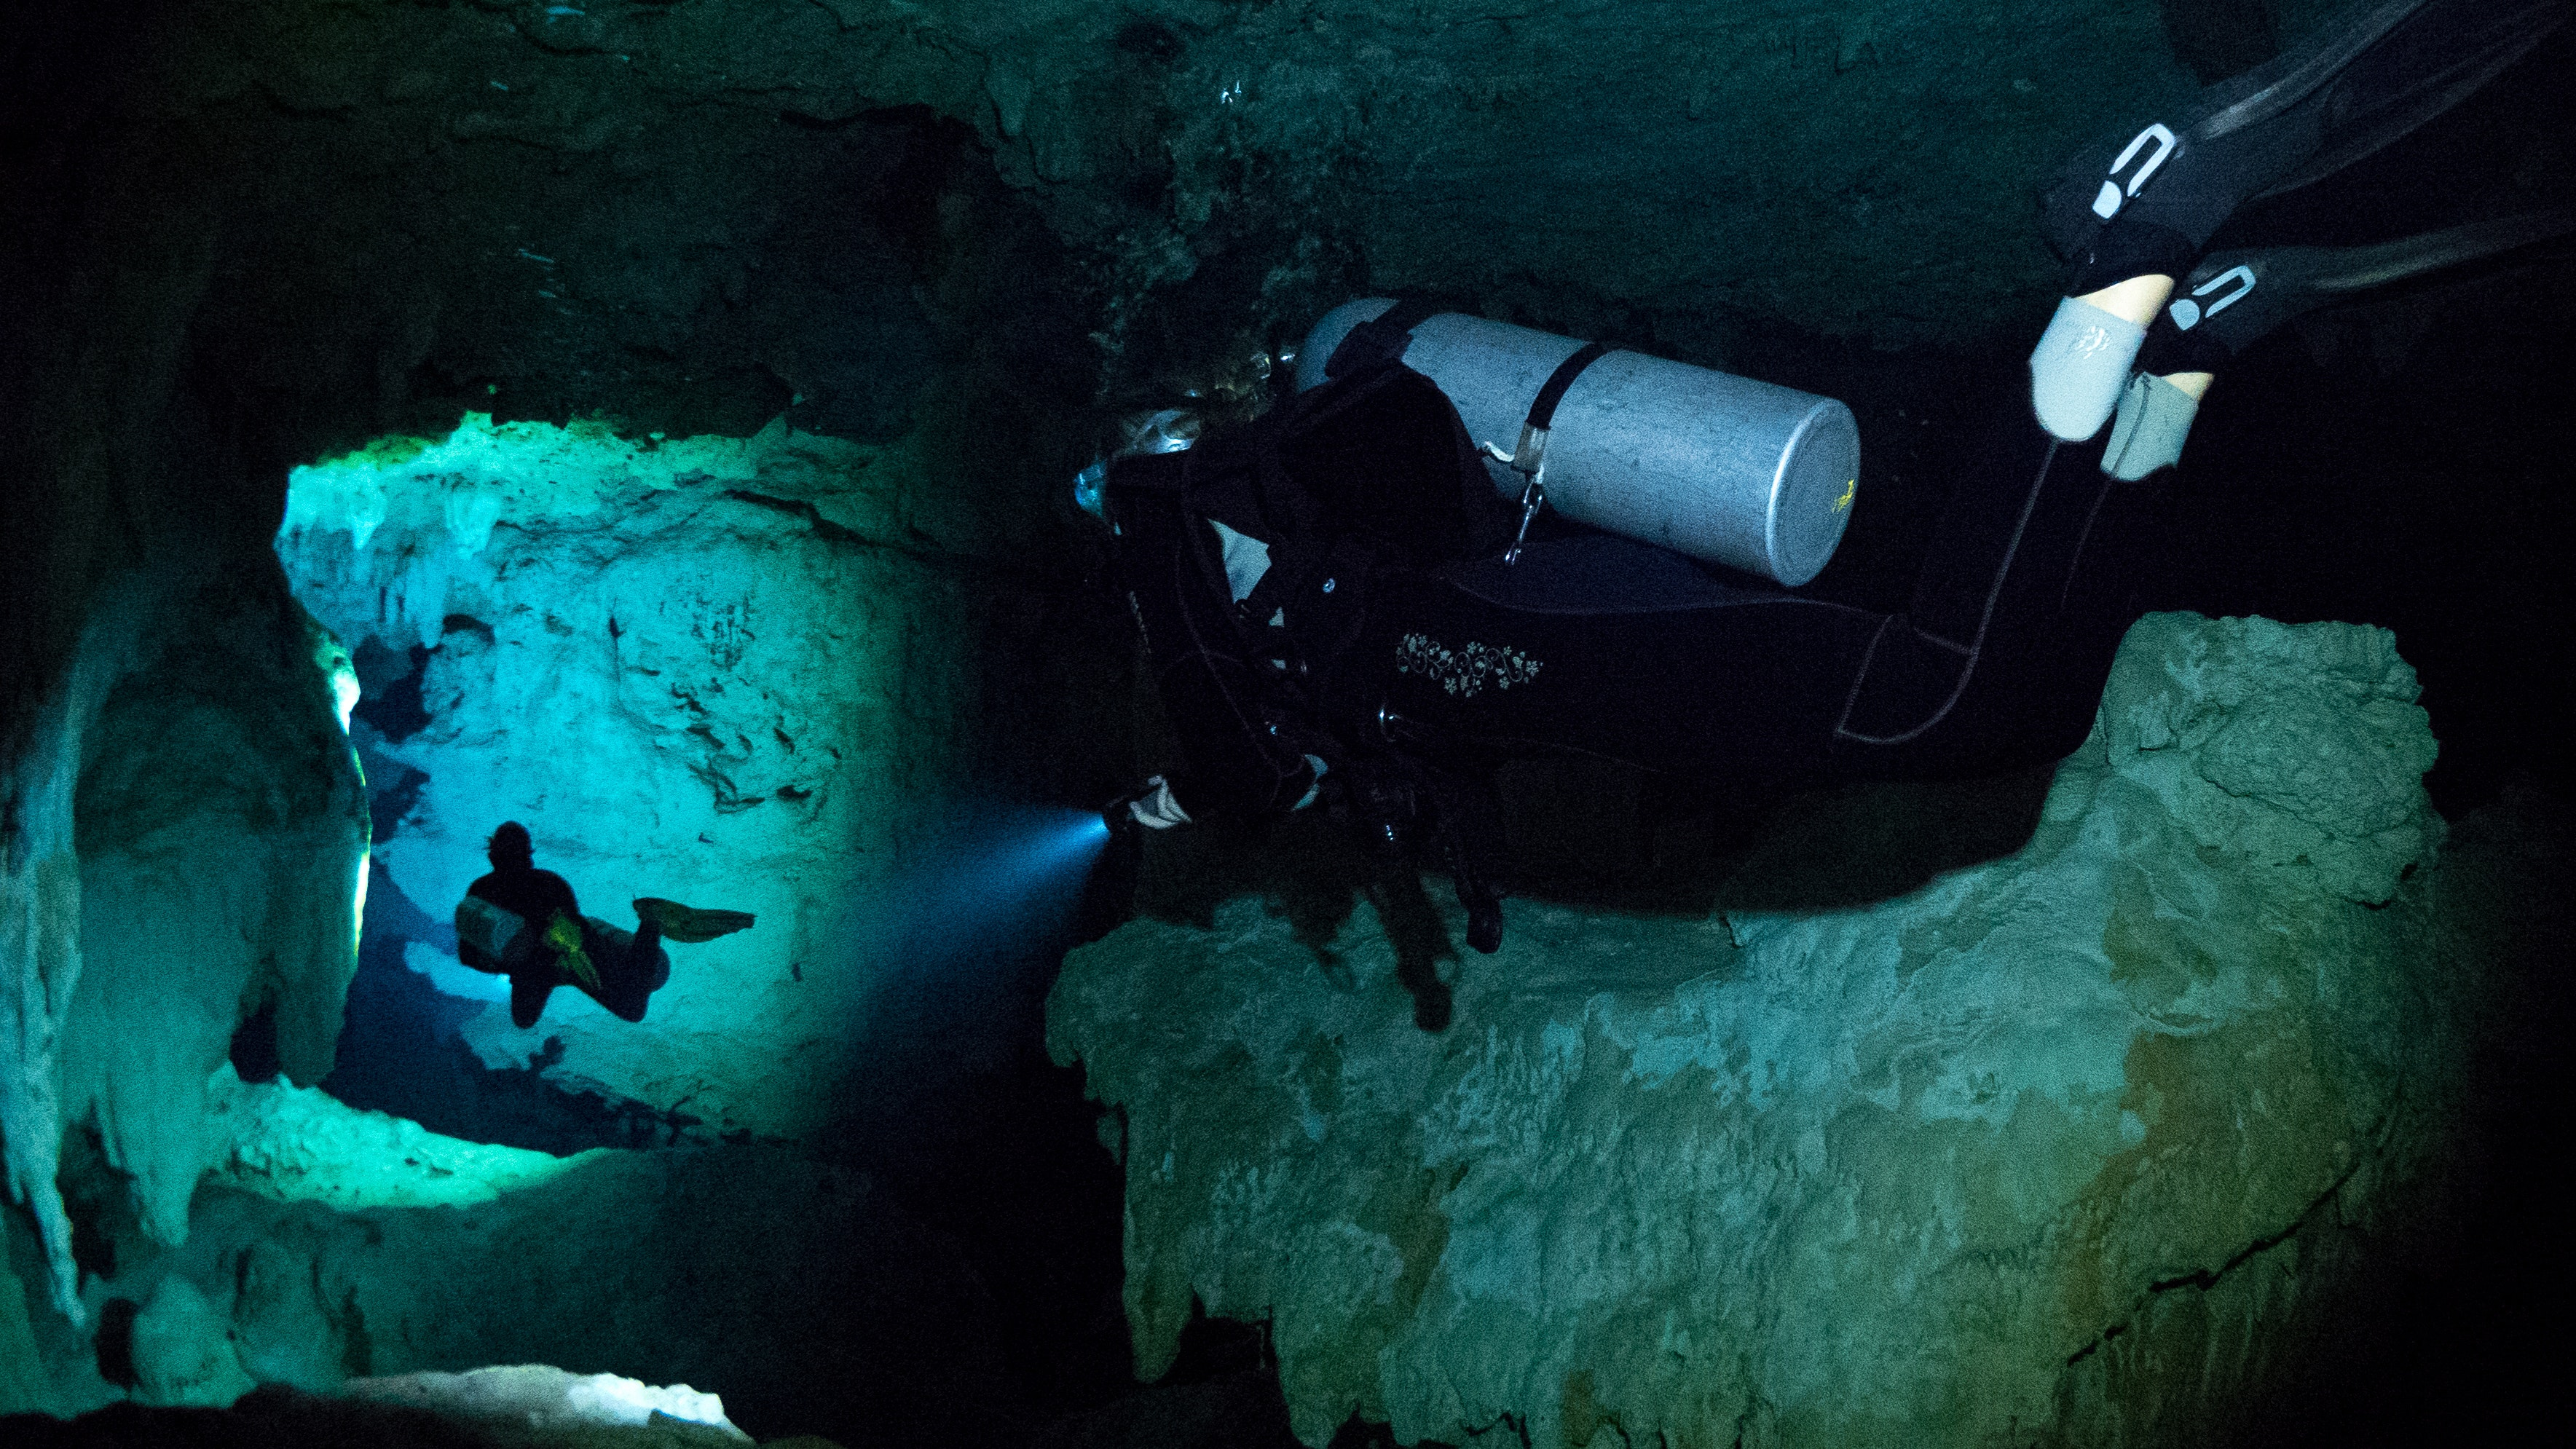 Diving through narrow passages and tight spaces requires a separate skill set.